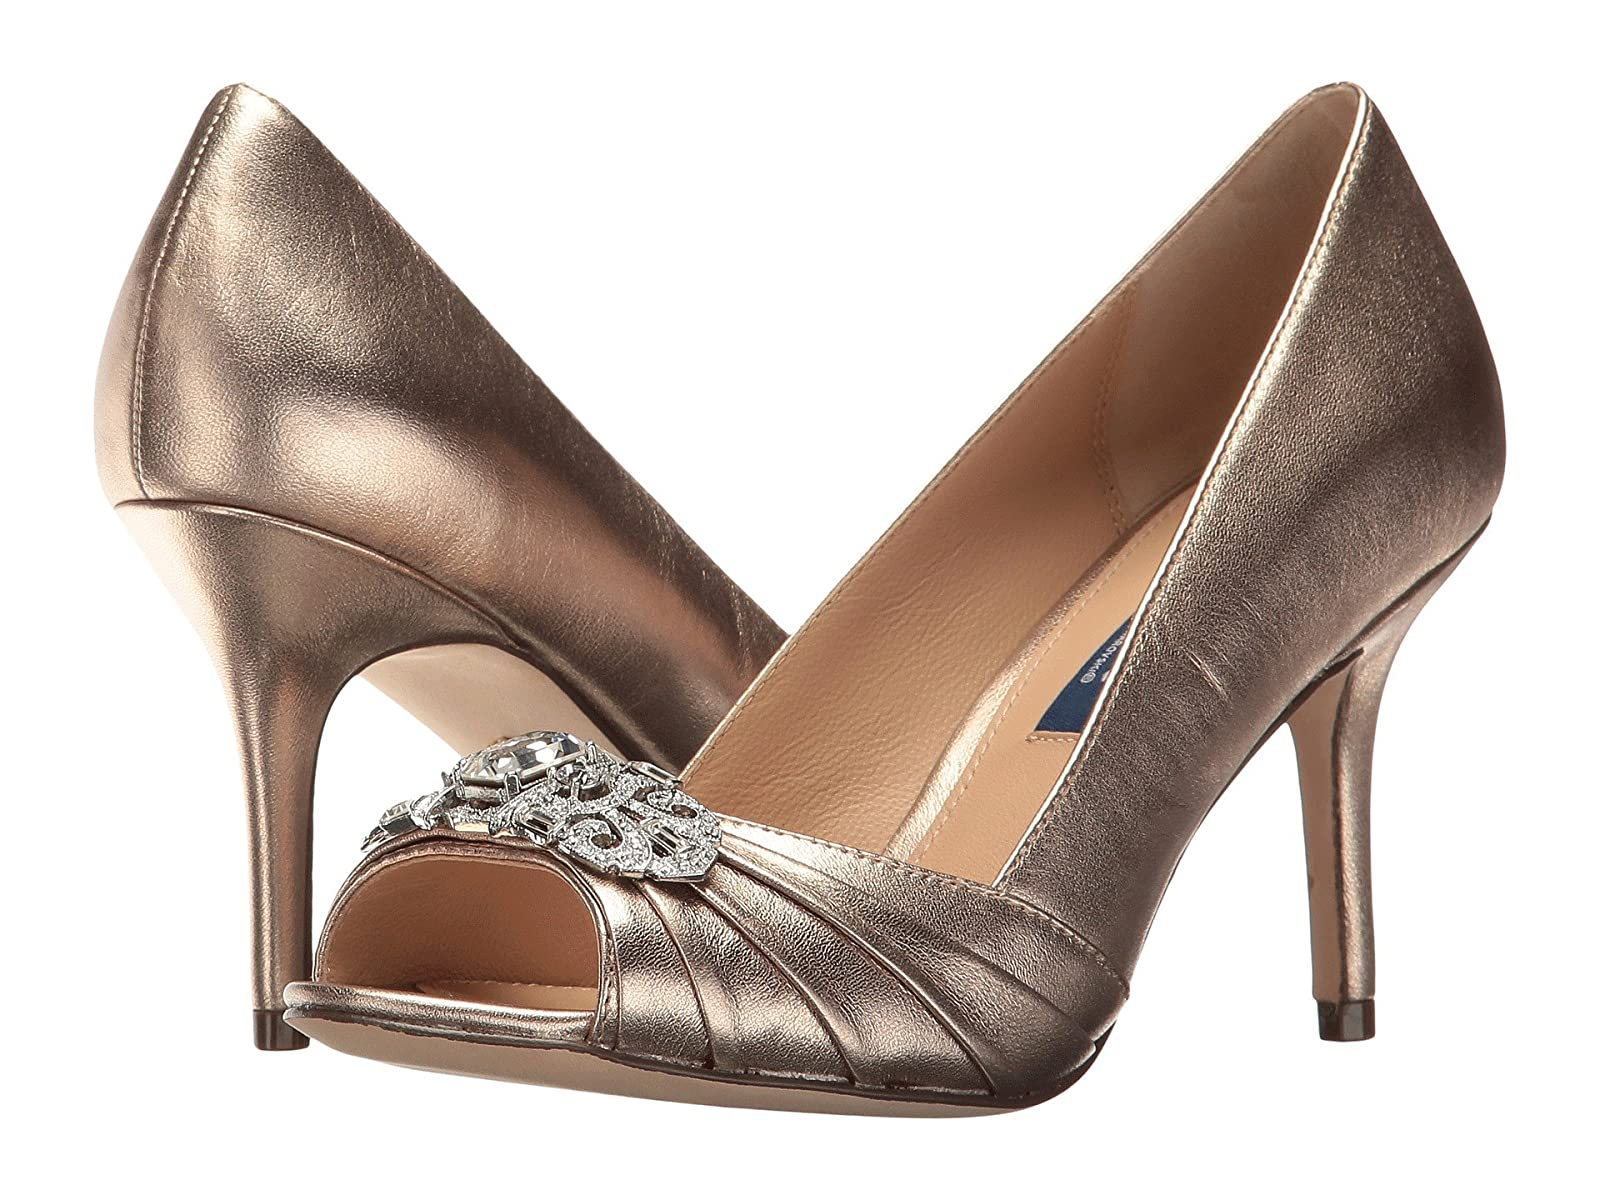 Nina VerityCheap and distinctive eye-catching shoes